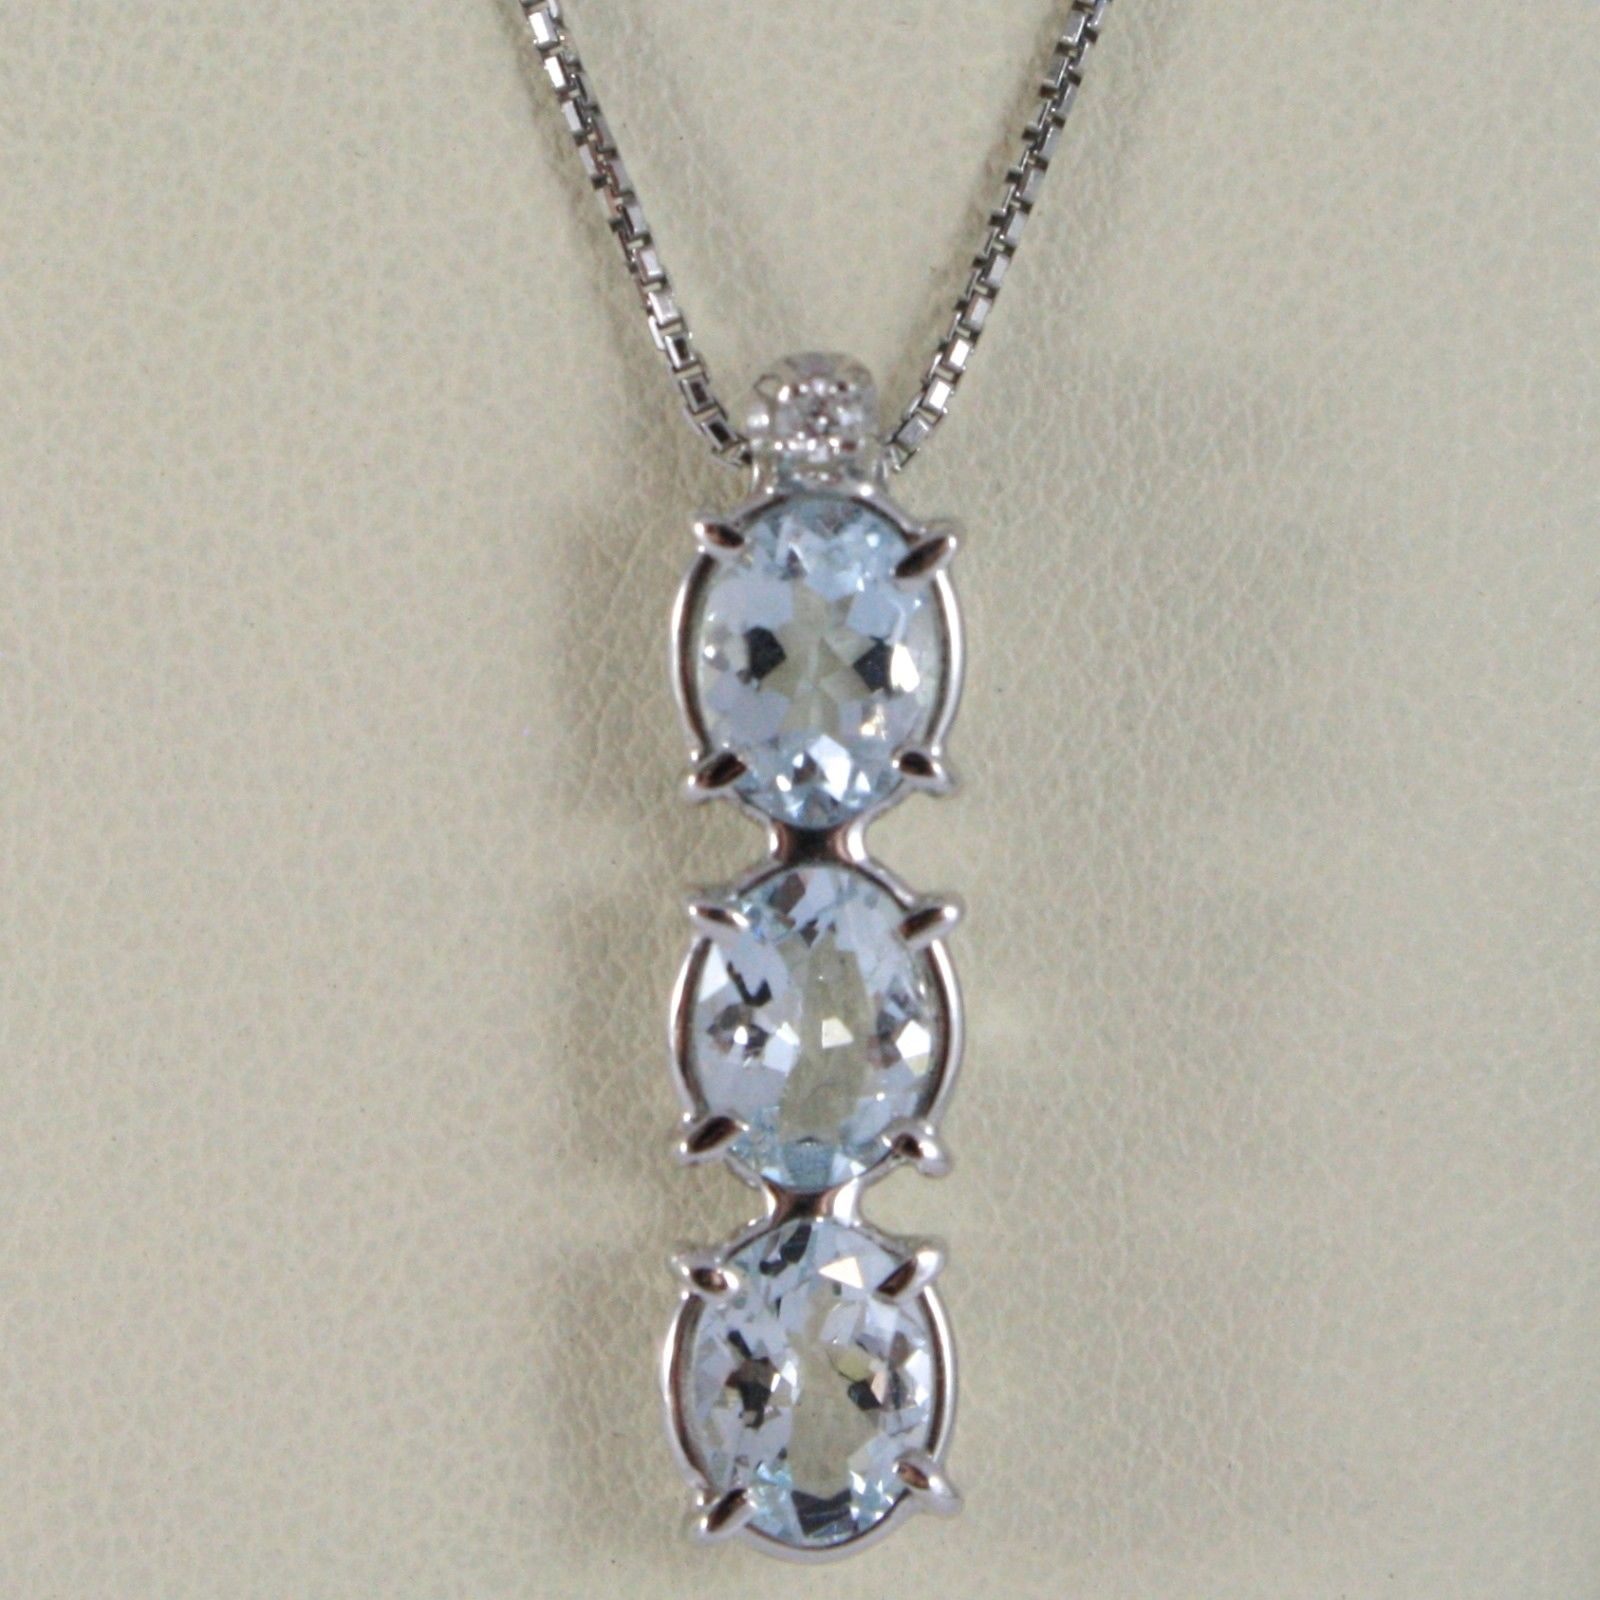 NECKLACE WHITE GOLD 750 - 18K, TRILOGY AQUAMARINES OVALS CARAT 2.50 AND DIAMOND